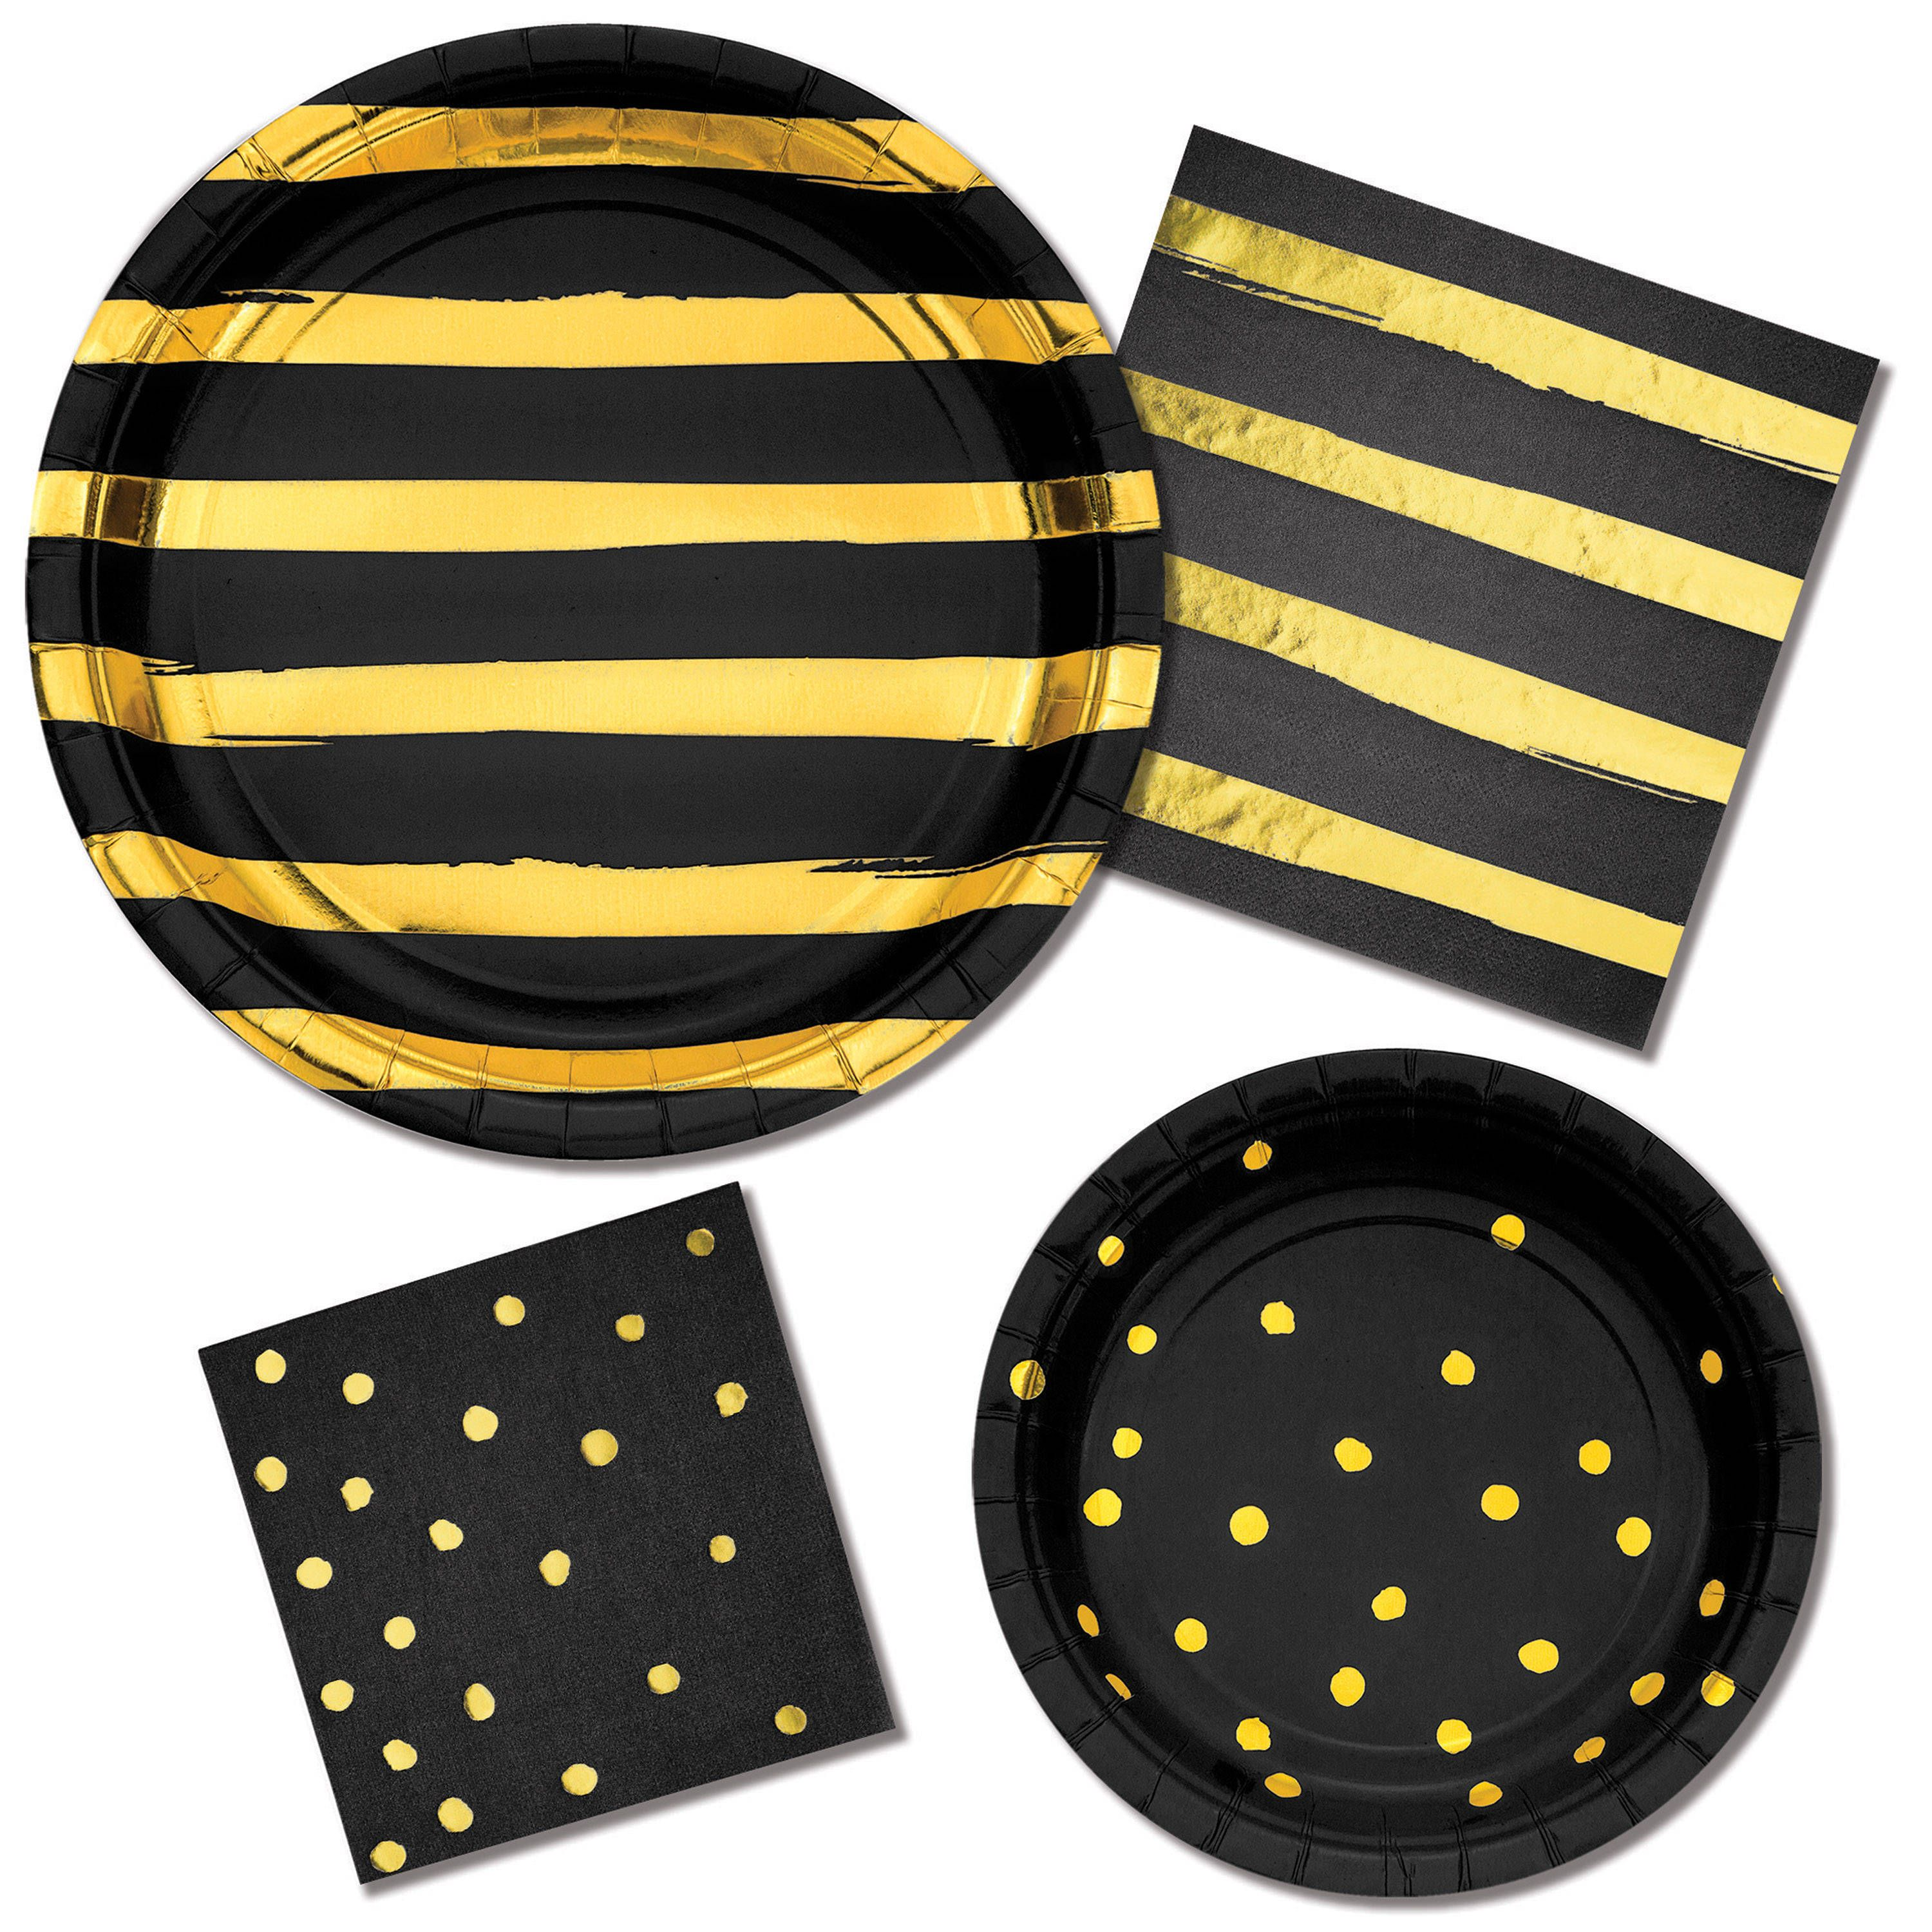 Black And Gold Party Supplies Black And Gold Foil Plates Black